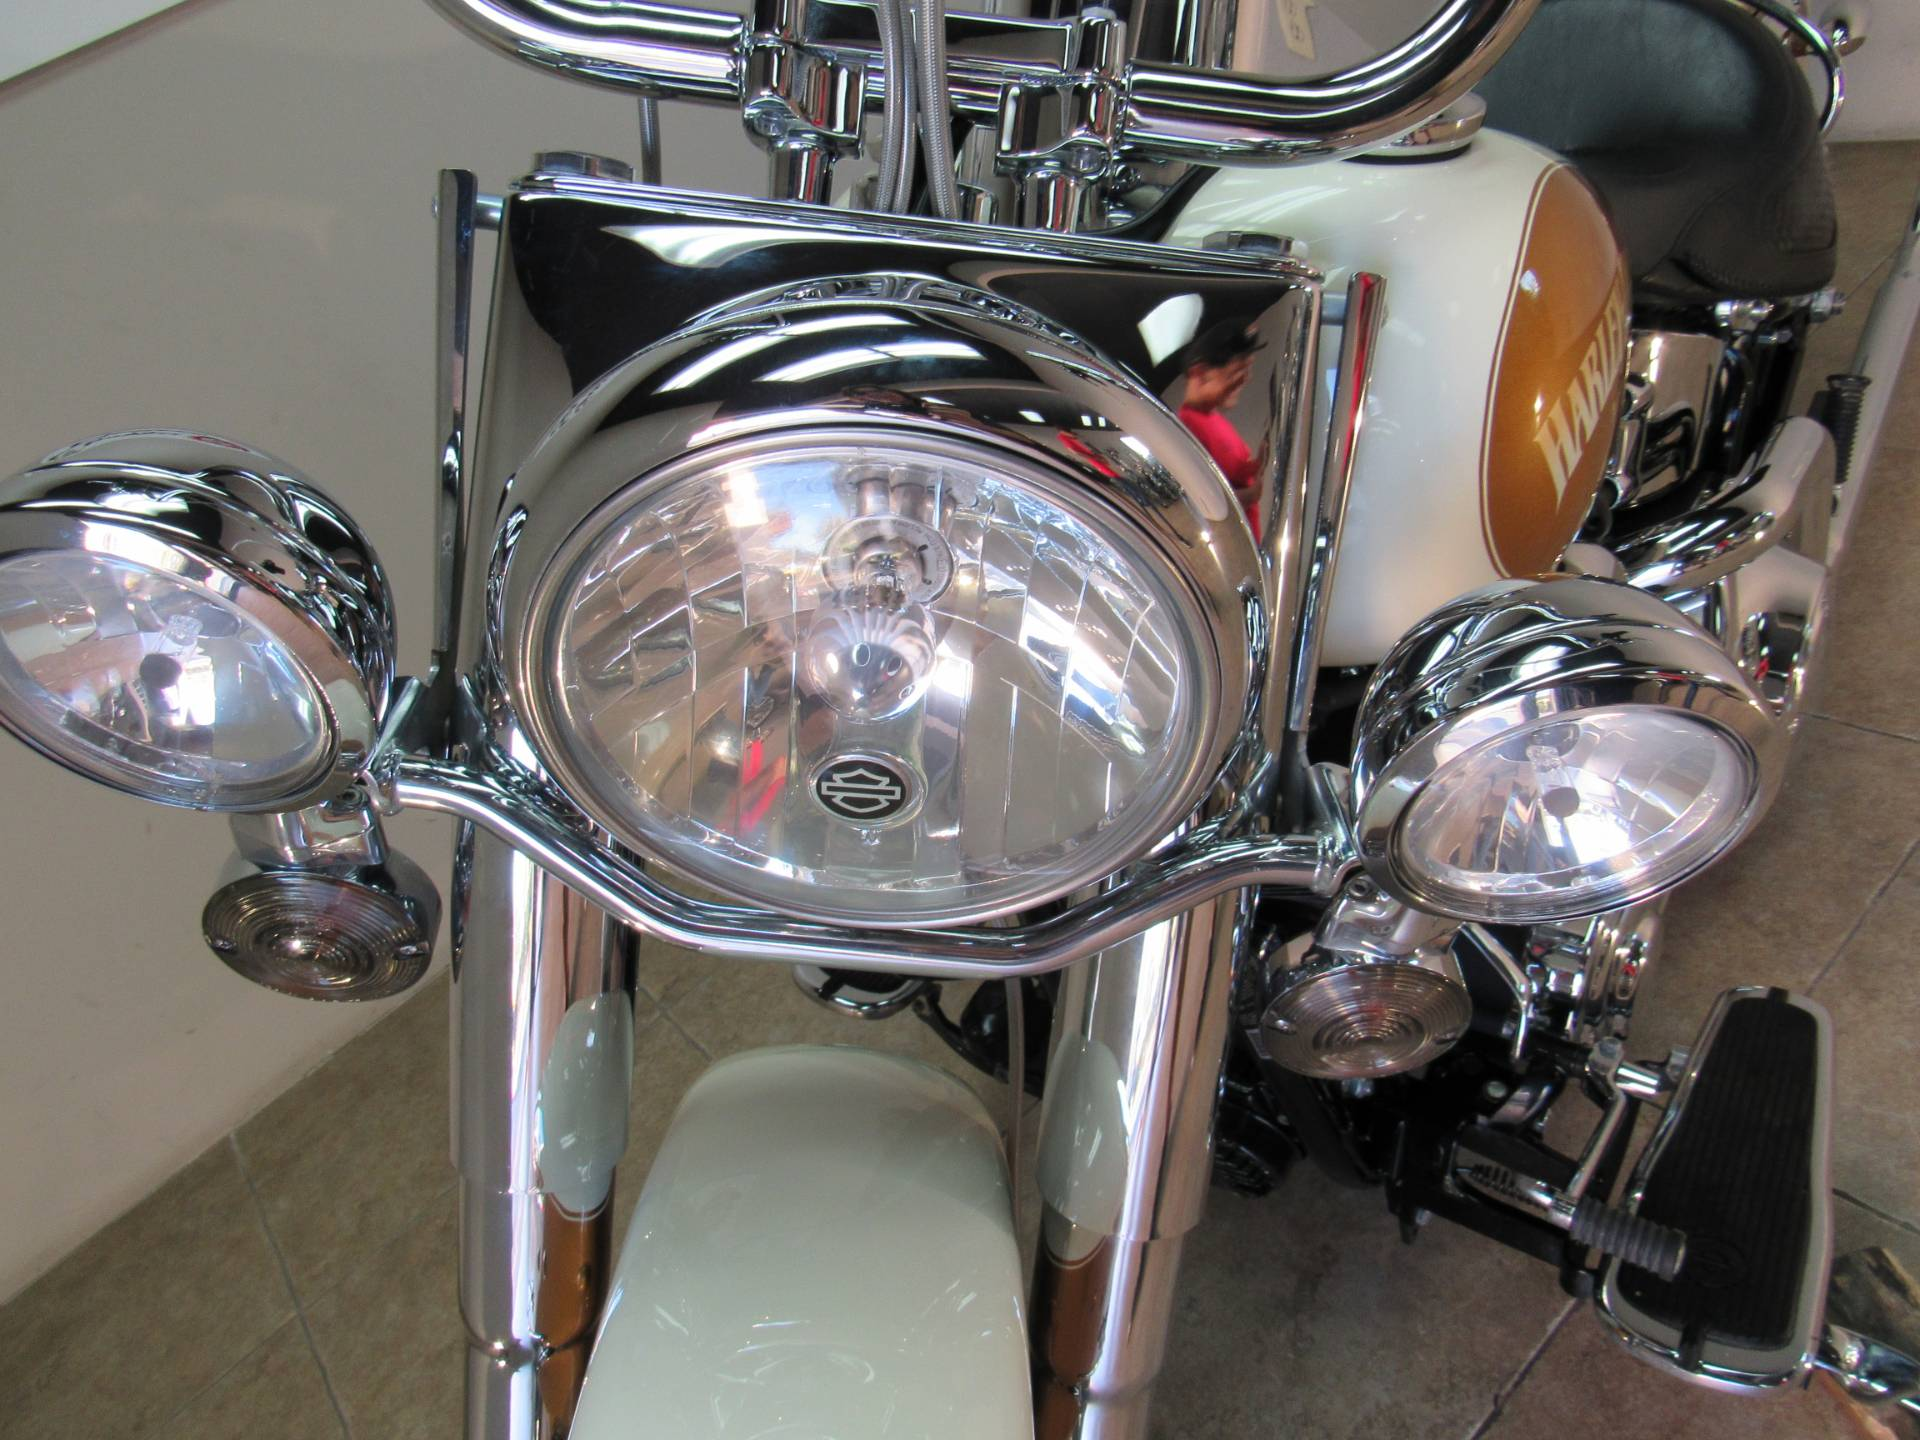 2013 Harley-Davidson Softail® Deluxe in Temecula, California - Photo 46